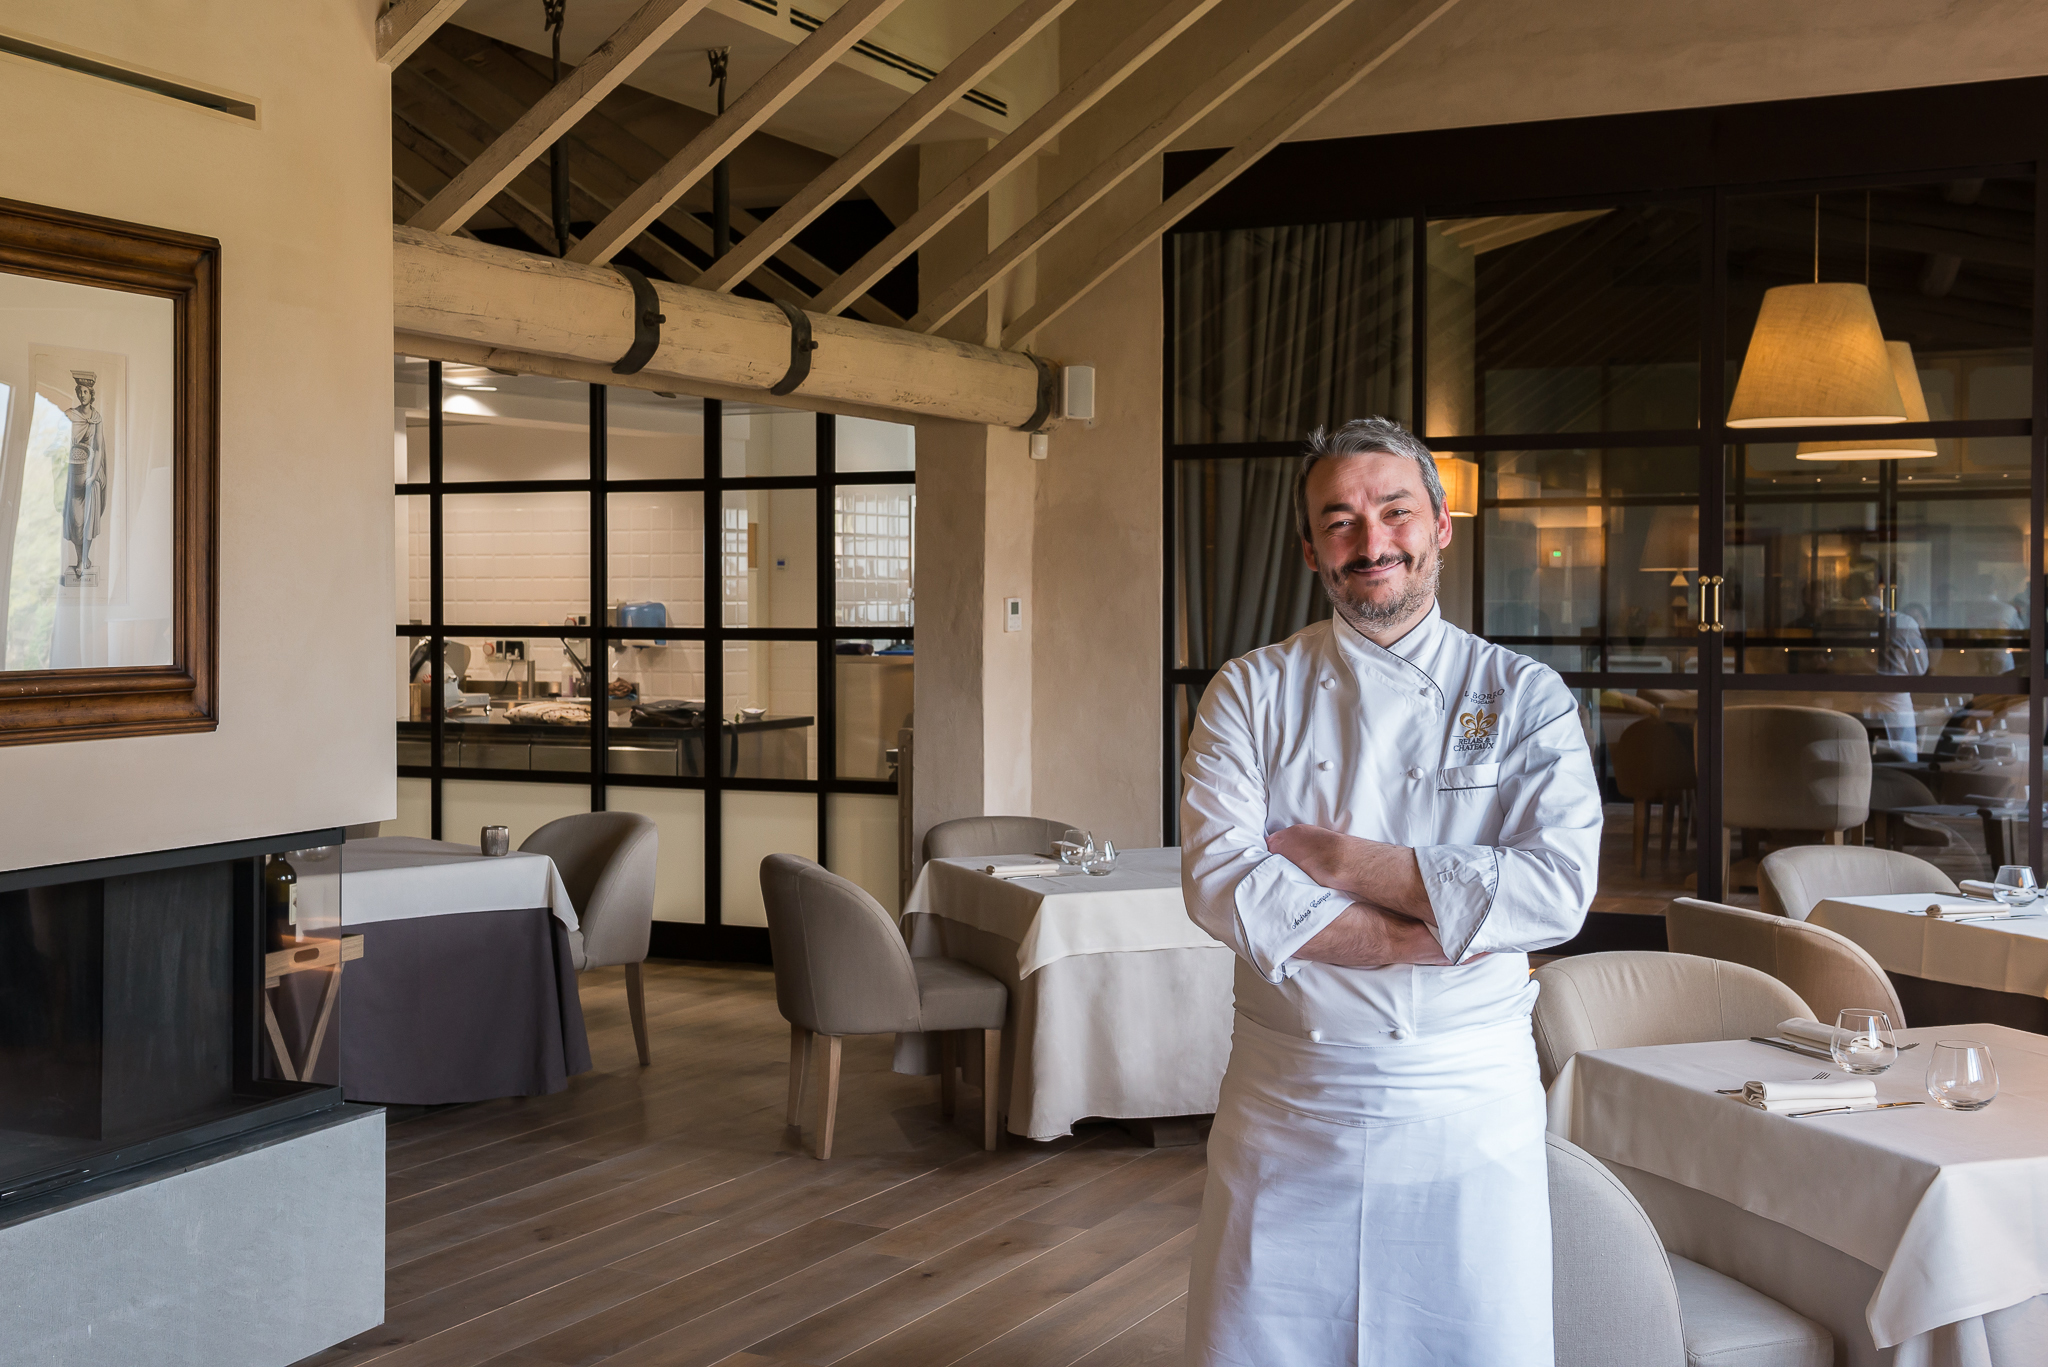 Andrea Campani heads the kitchens at Il Borro